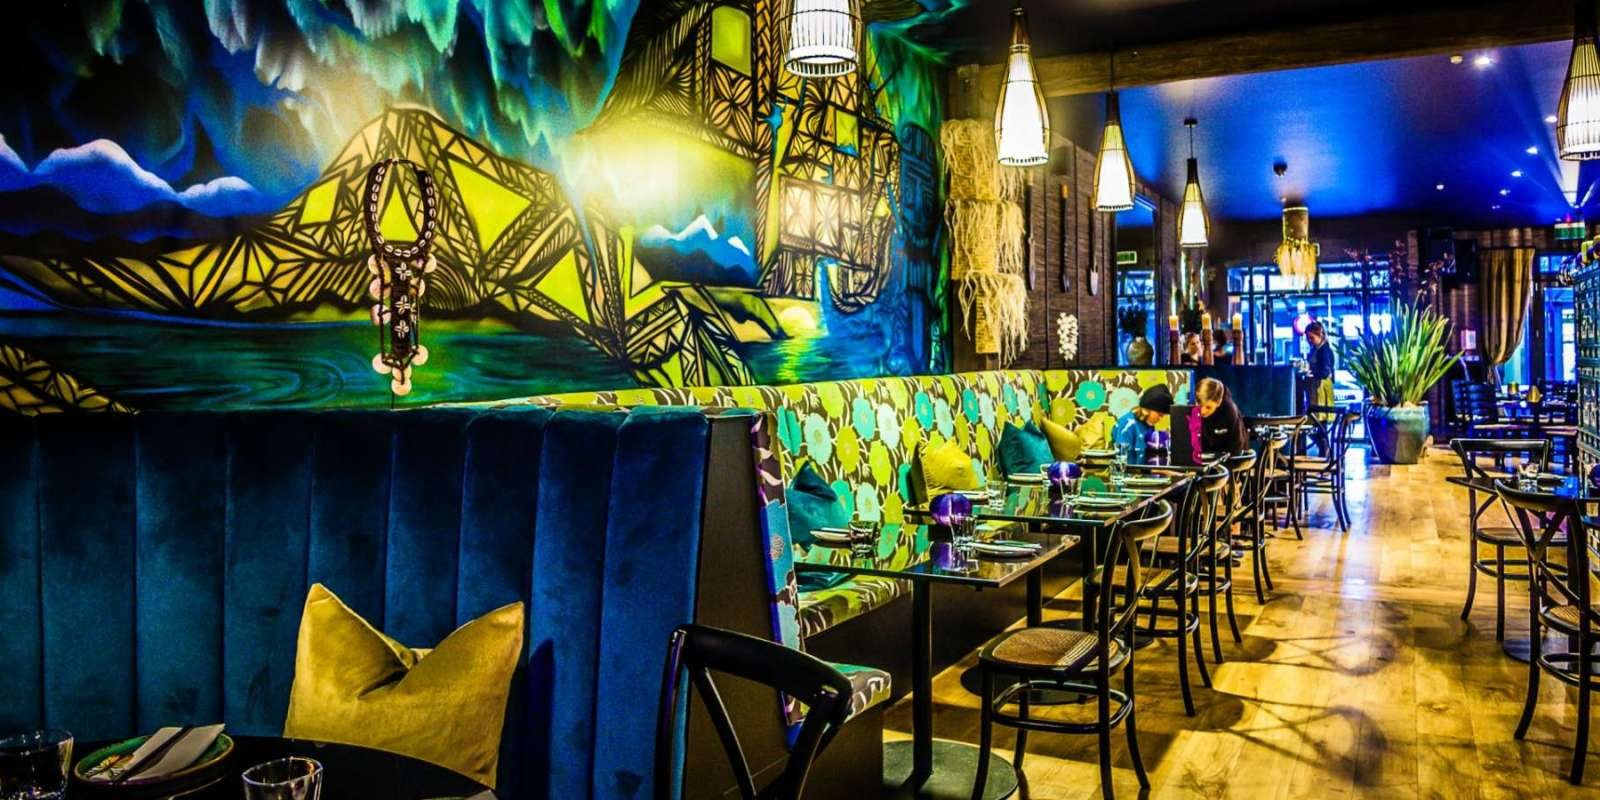 The vibrant interior of Blue Kanu